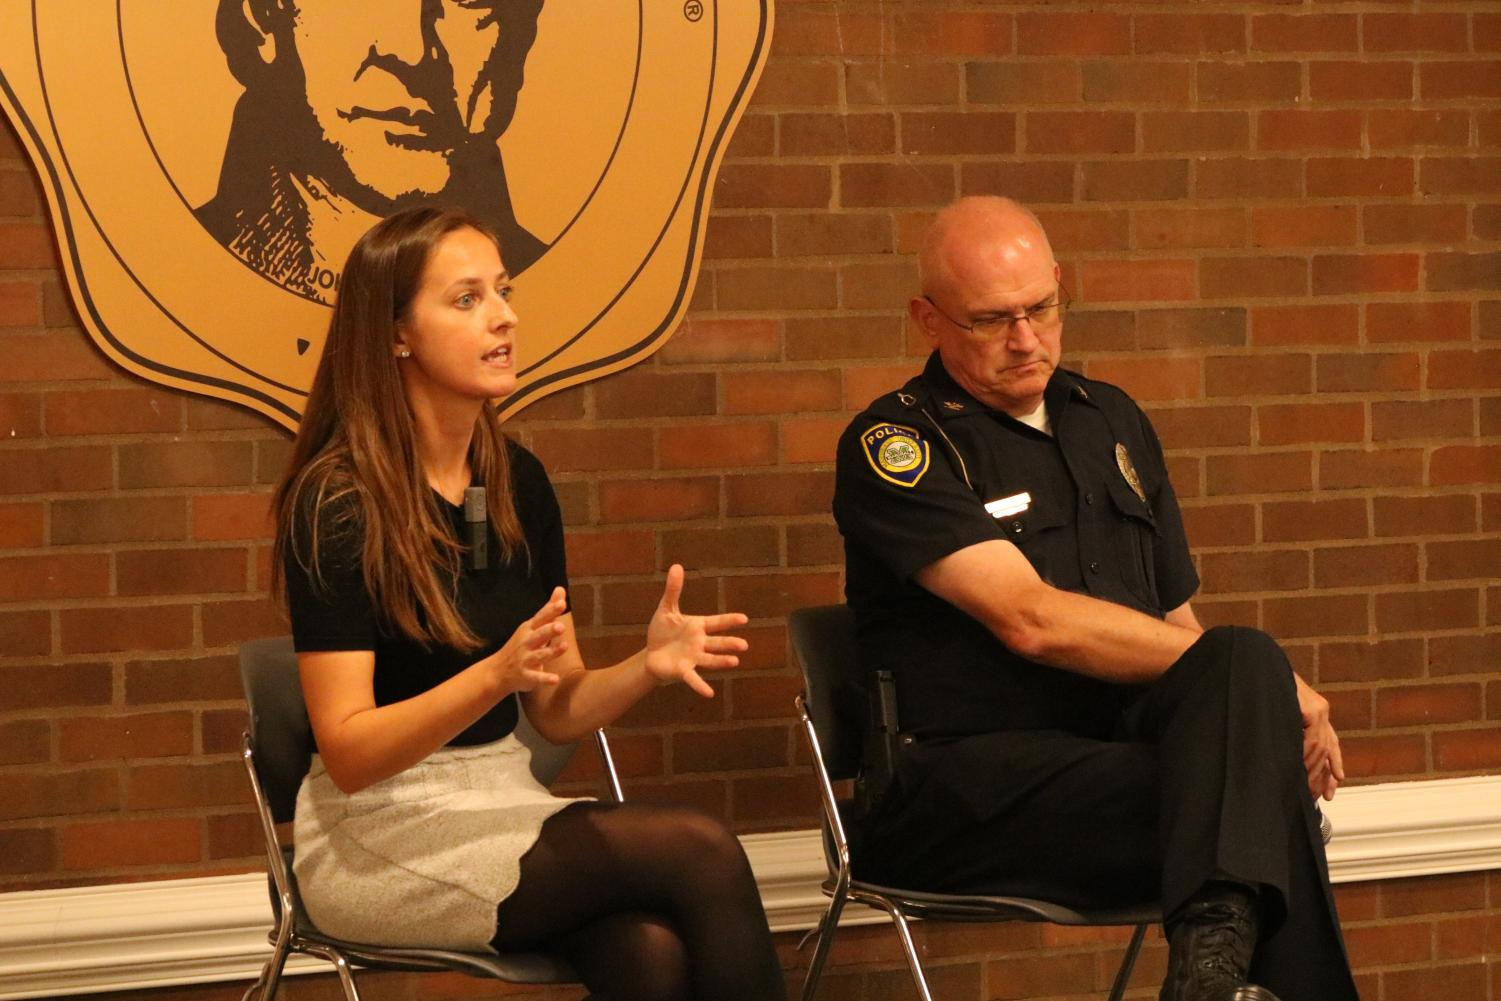 Kristina Anderson, founder of the Koshka Foundation for Safe Schools, and MUPD Chief Jim Terry discuss the ways in which Marshall University could improve campus safety at the 2019 Yeager Symposium Oct. 22.